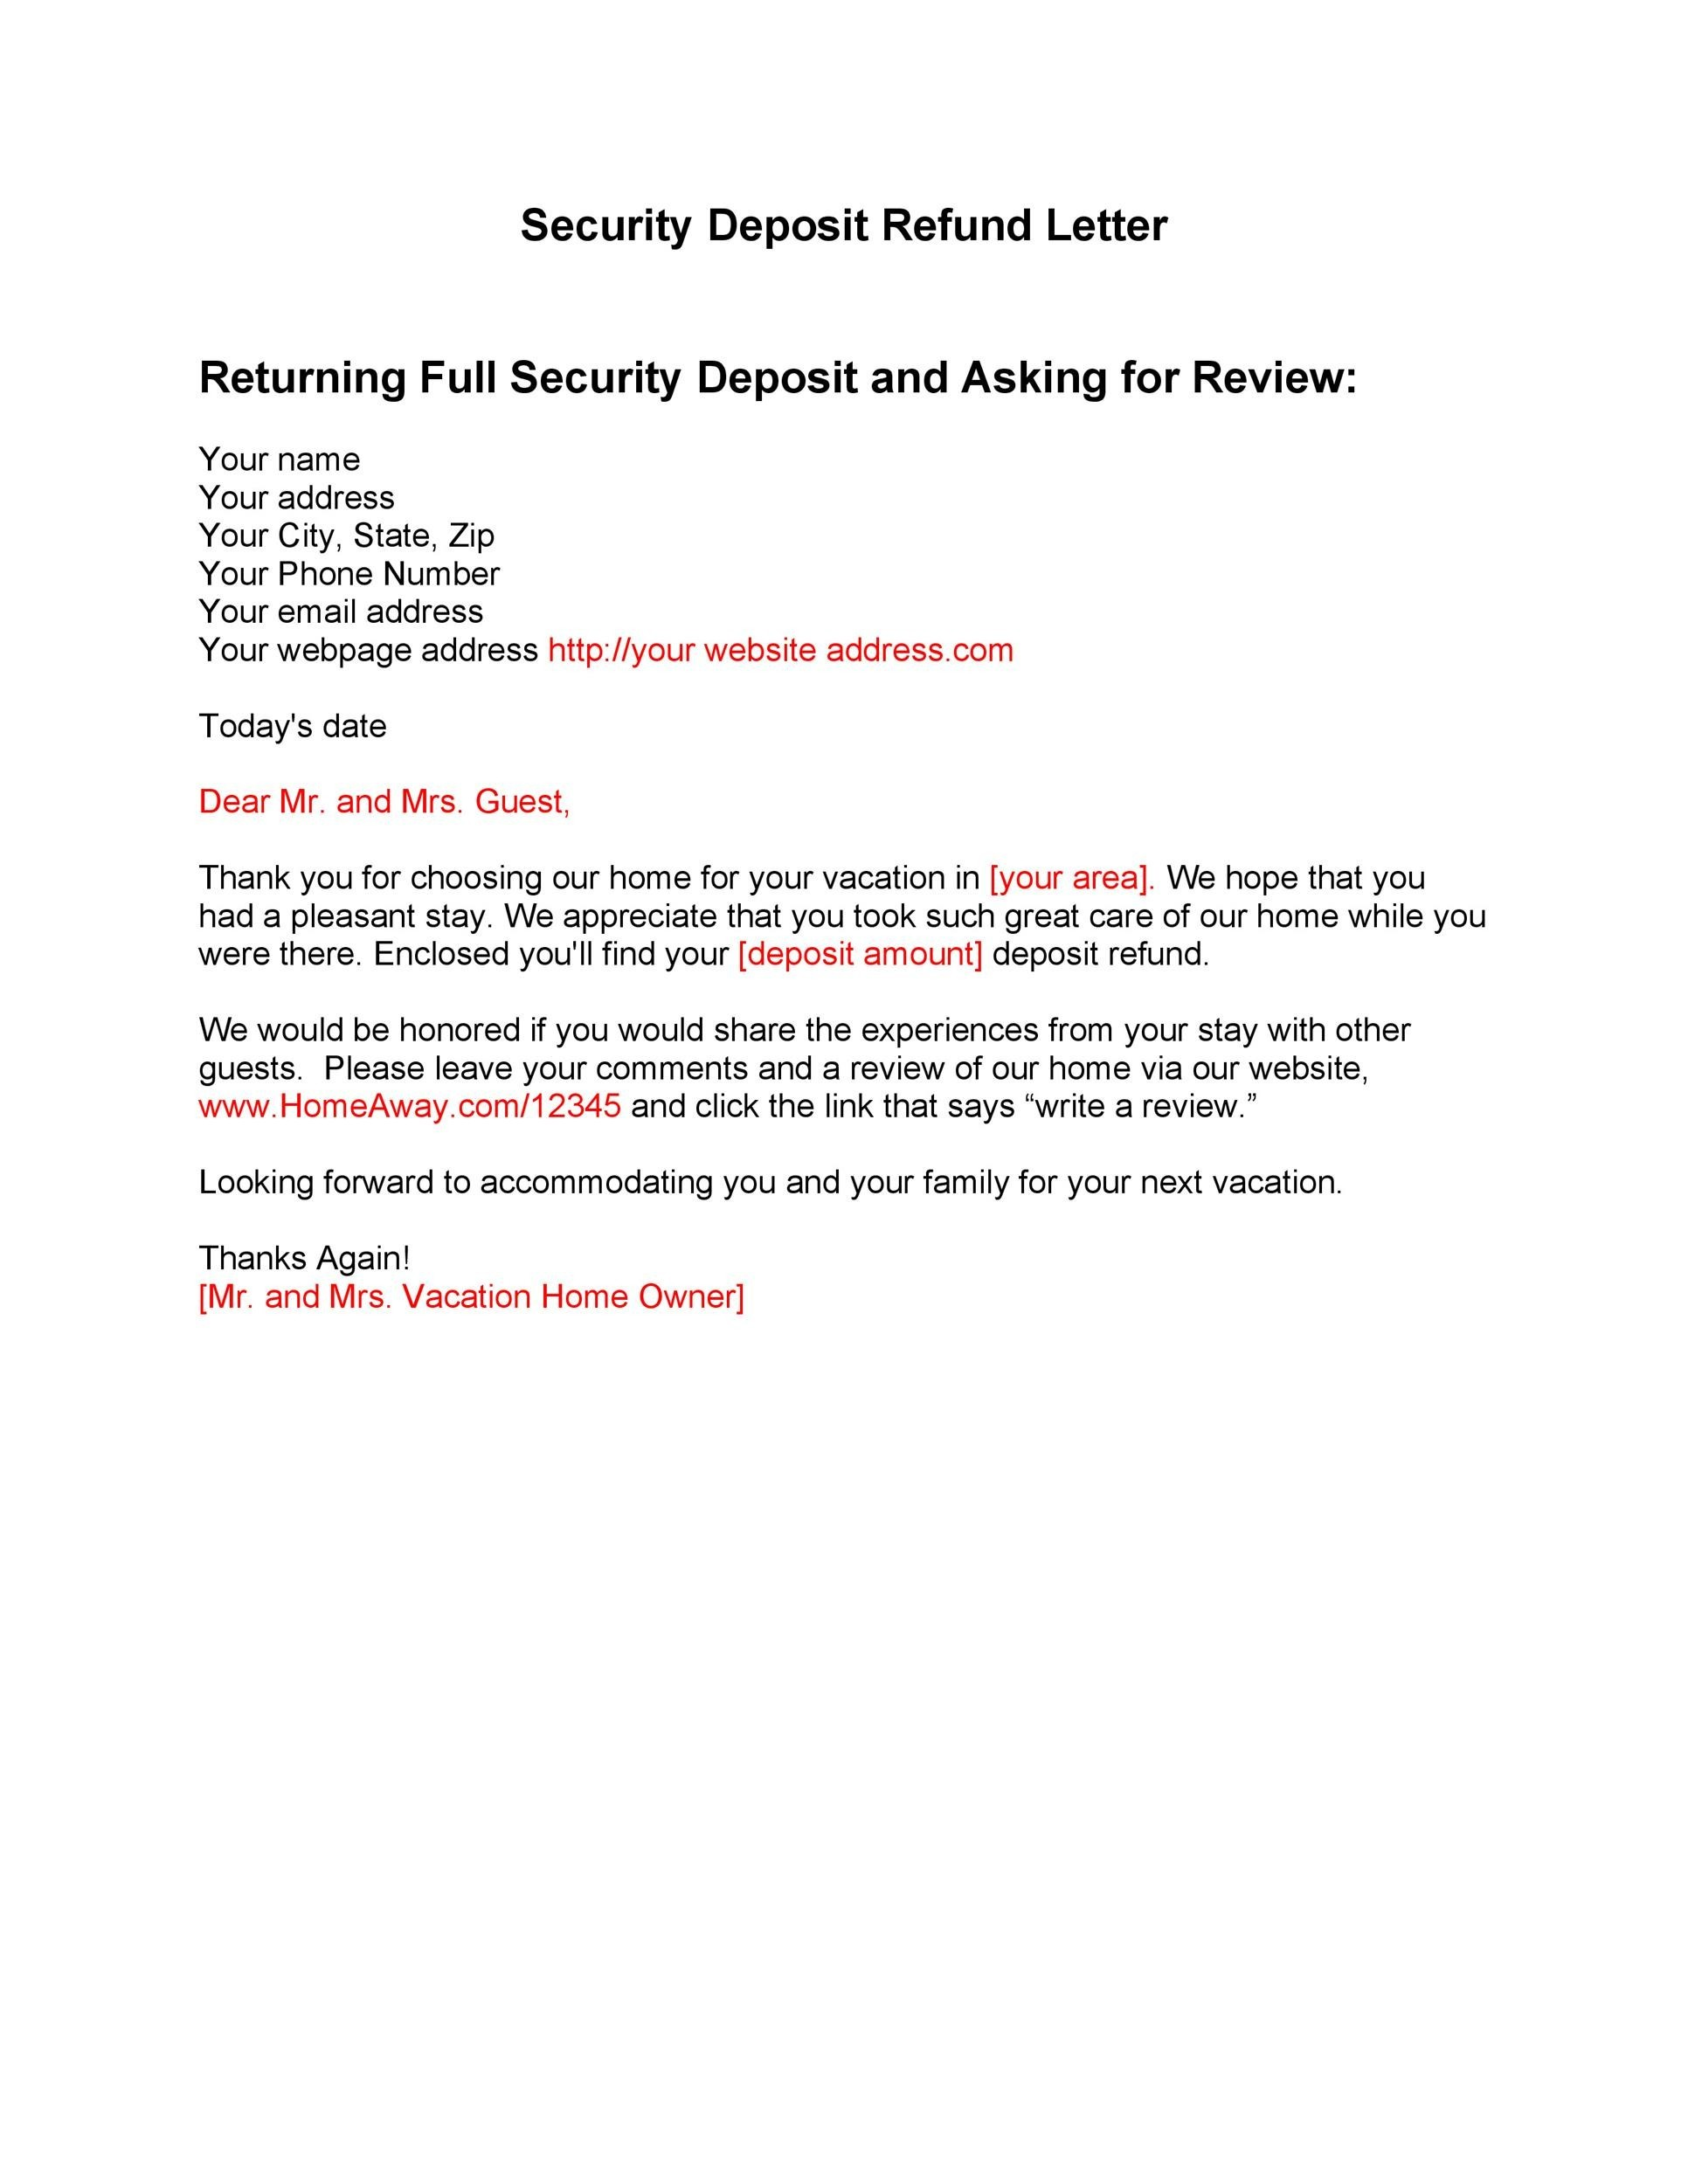 Free security deposit return letter 02